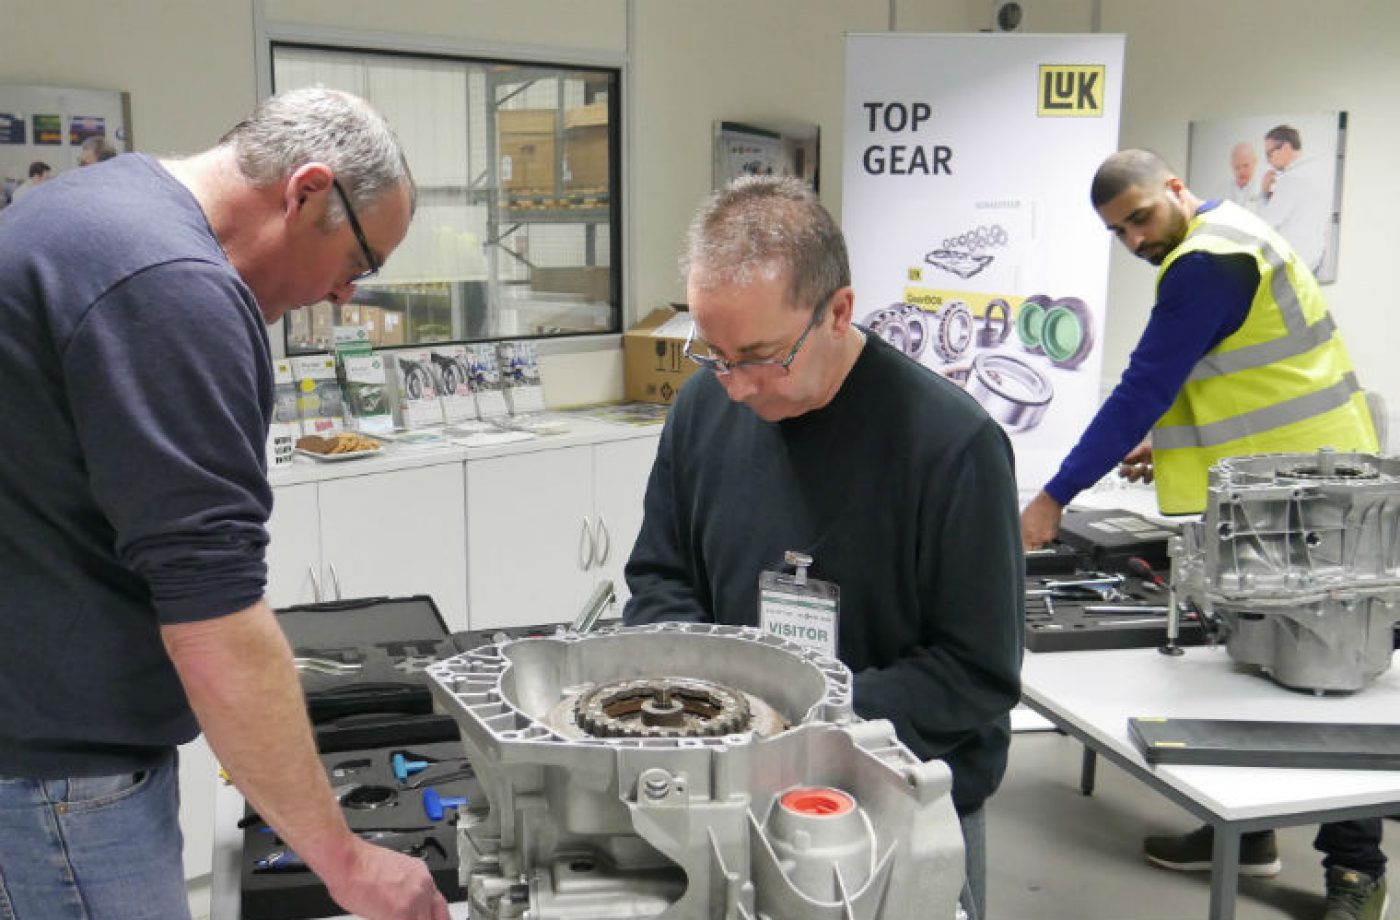 Free REPXPERT LuK 2CT double clutch training to take place in Hereford this month